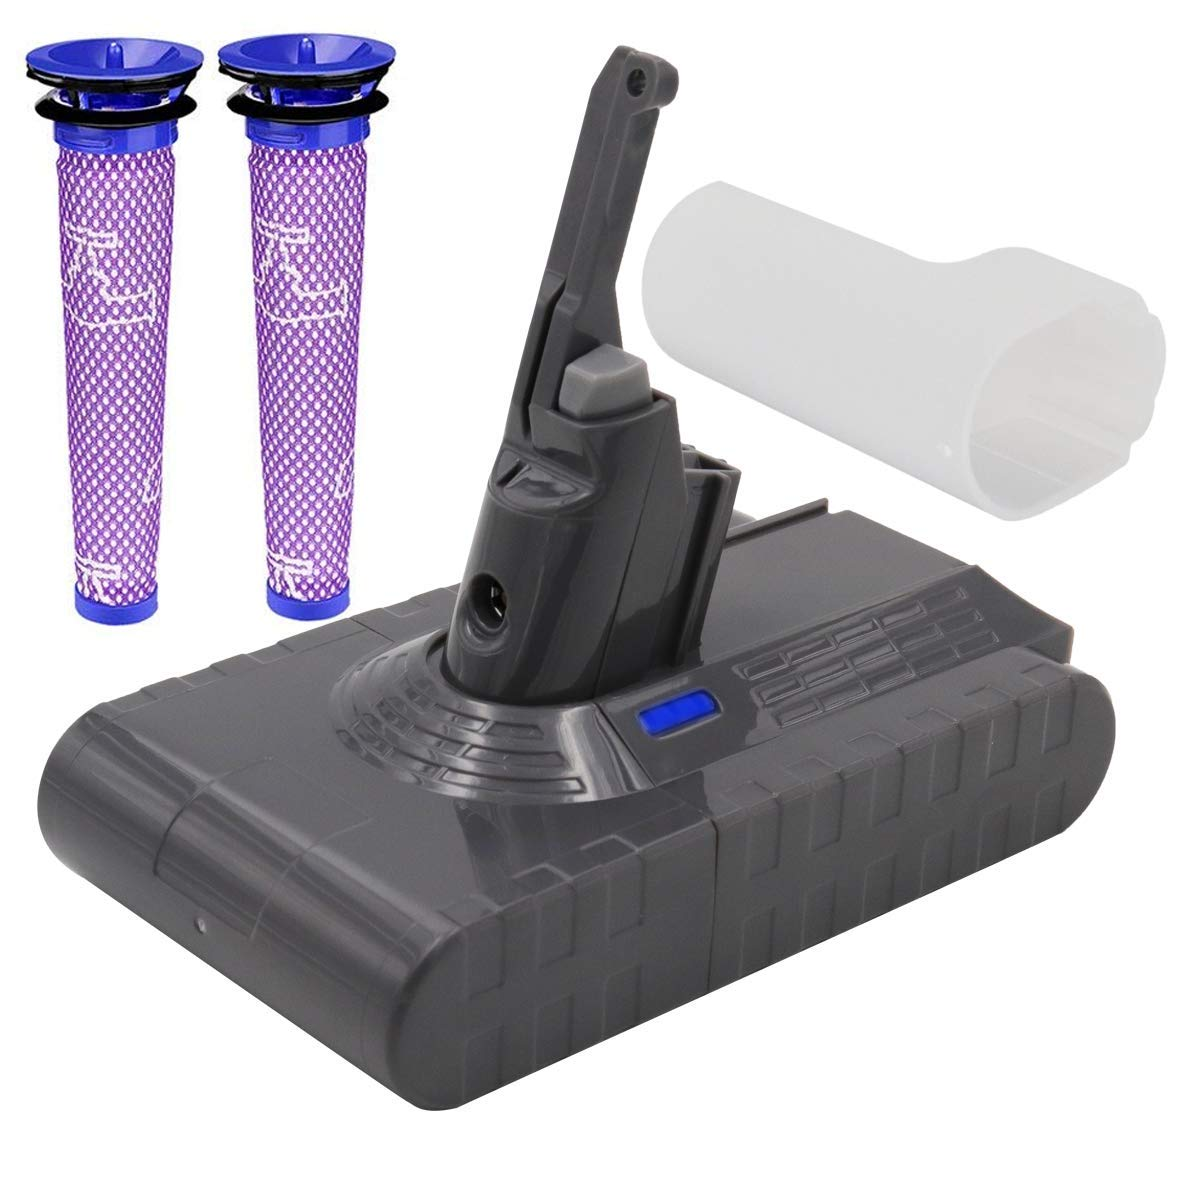 Dyson Battery Replacement - (Upgraded 3600mAh 21.6V) Dyson Battery Dyson V8 Battery Replacement With Filter Compatible for Dyson V8 Absolute Cord-Free Vacuum Cleaner (Not Fit Dyson VC10 fluffy)